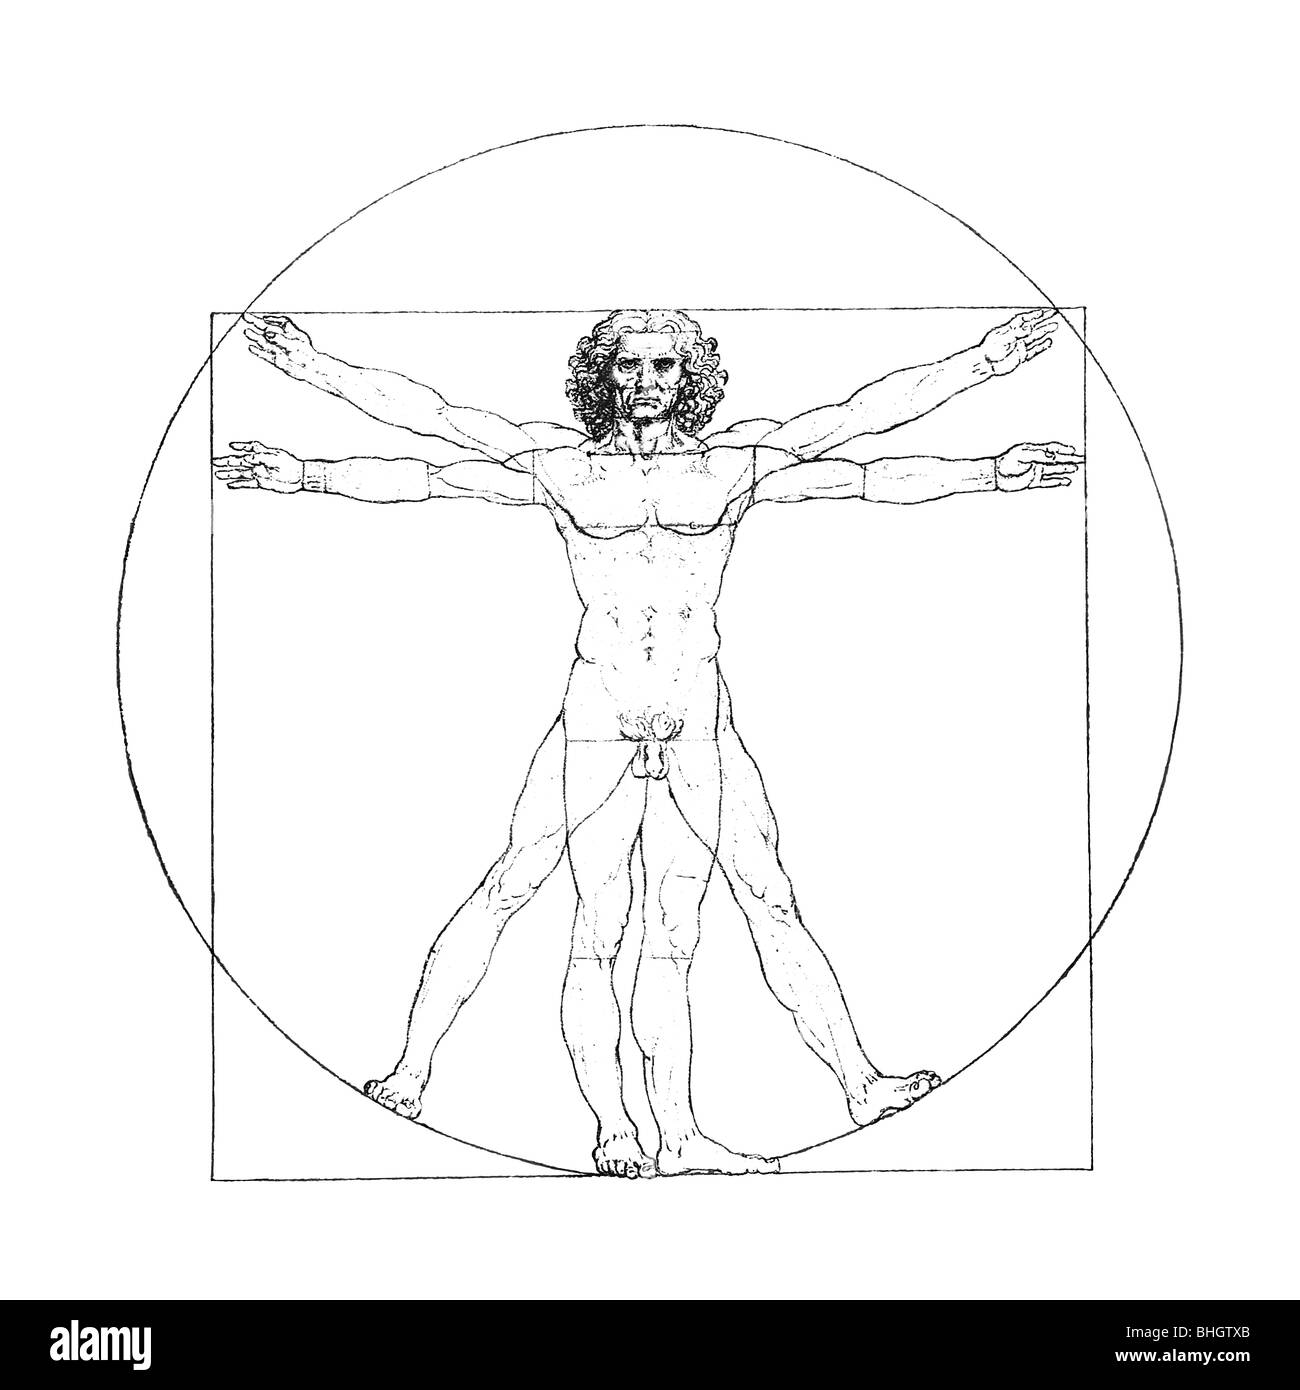 Leonardo Da Vinci's Vitruvian Man, digitally enhanced and retouched, isolated on white. - Stock Image